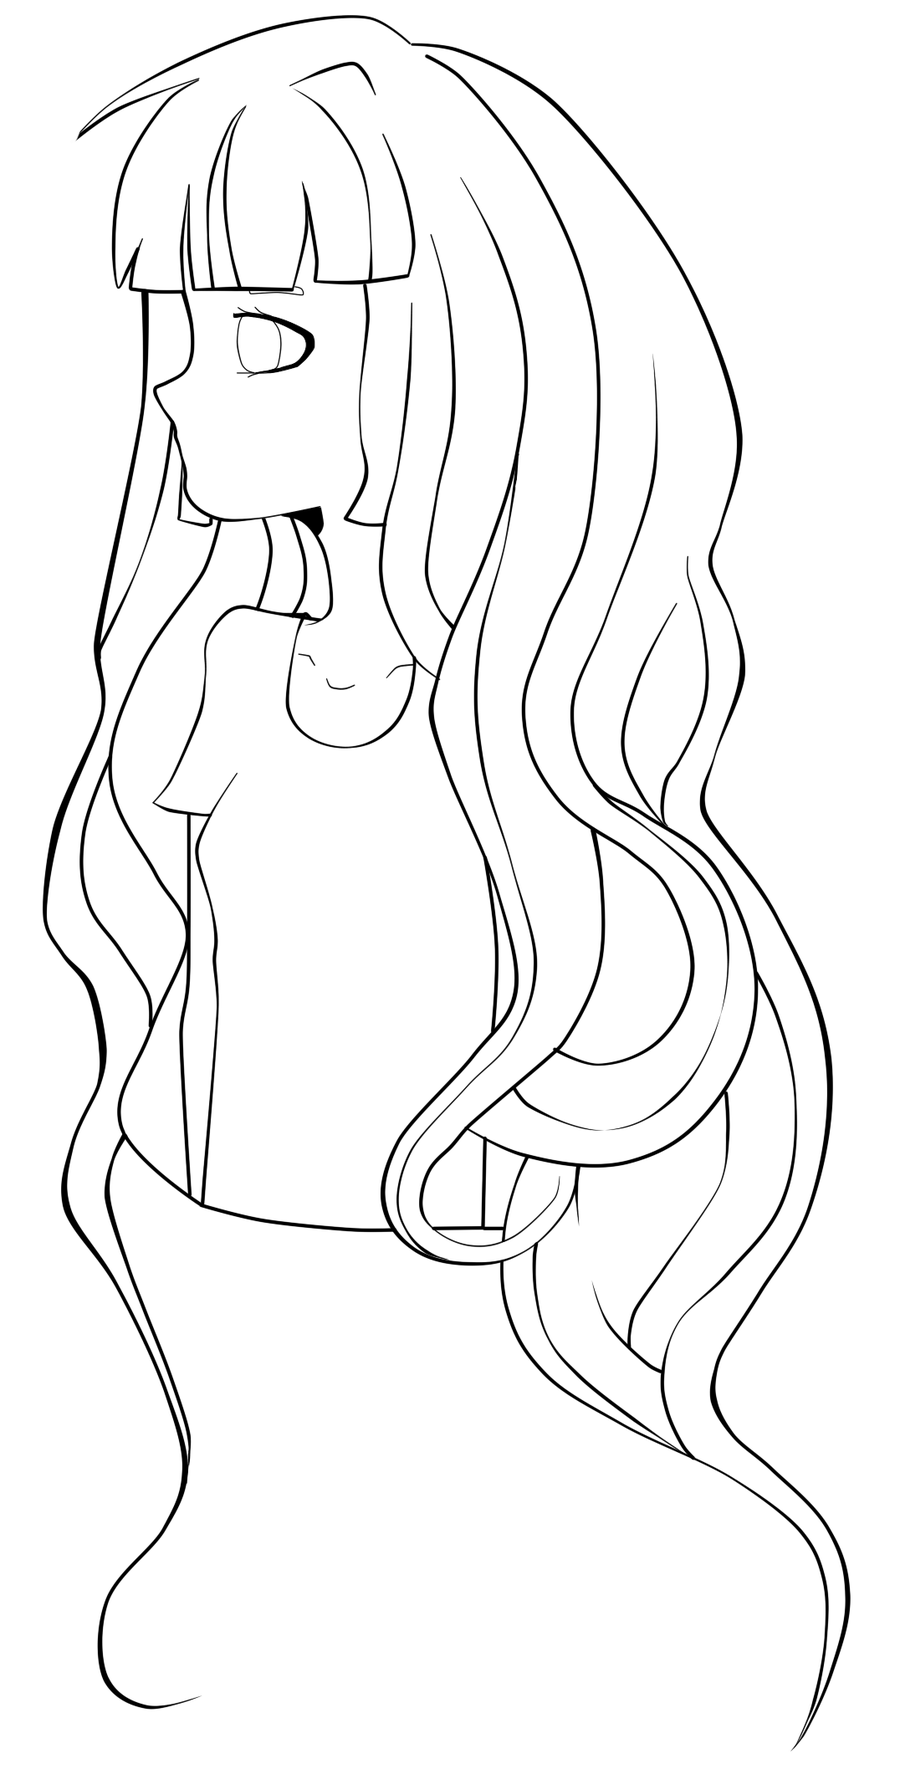 katy perry roar colouring pages  page 2